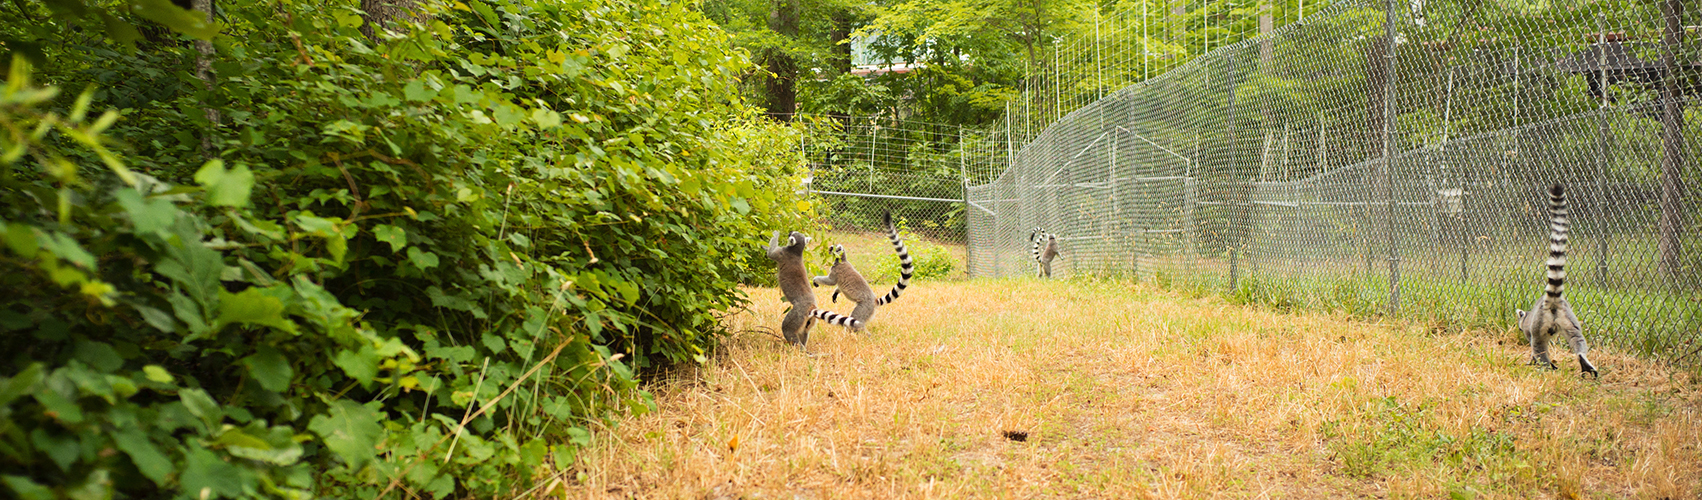 ring-tailed lemurs feeding in trees